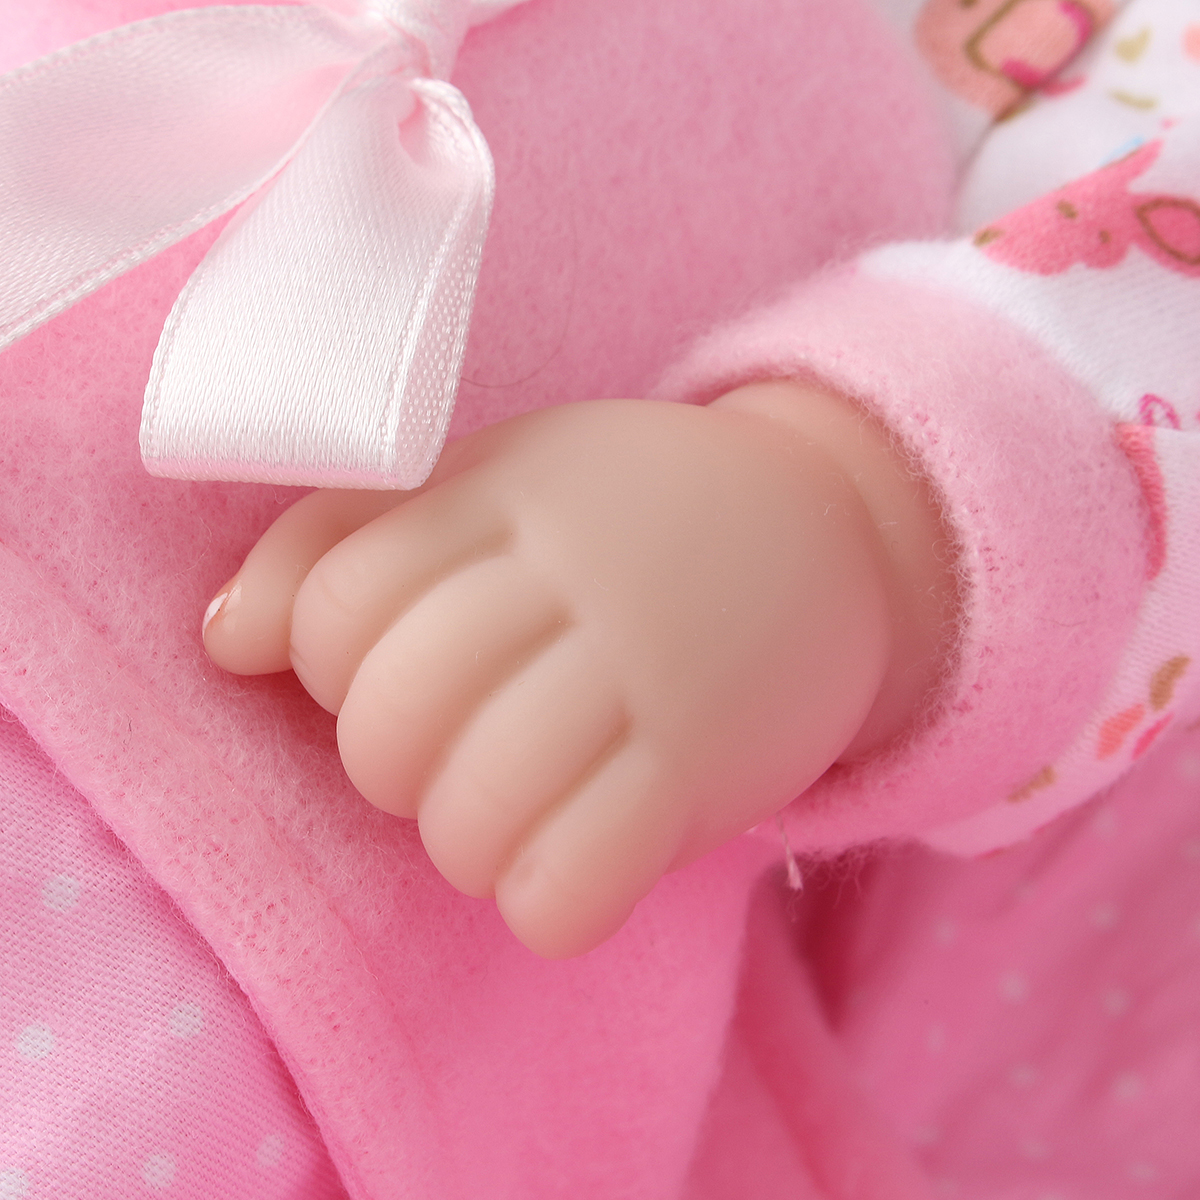 11inch Reborn Baby Doll Girl Silicone Handmade Lifelike Baby Dolls Play House Bath Toys